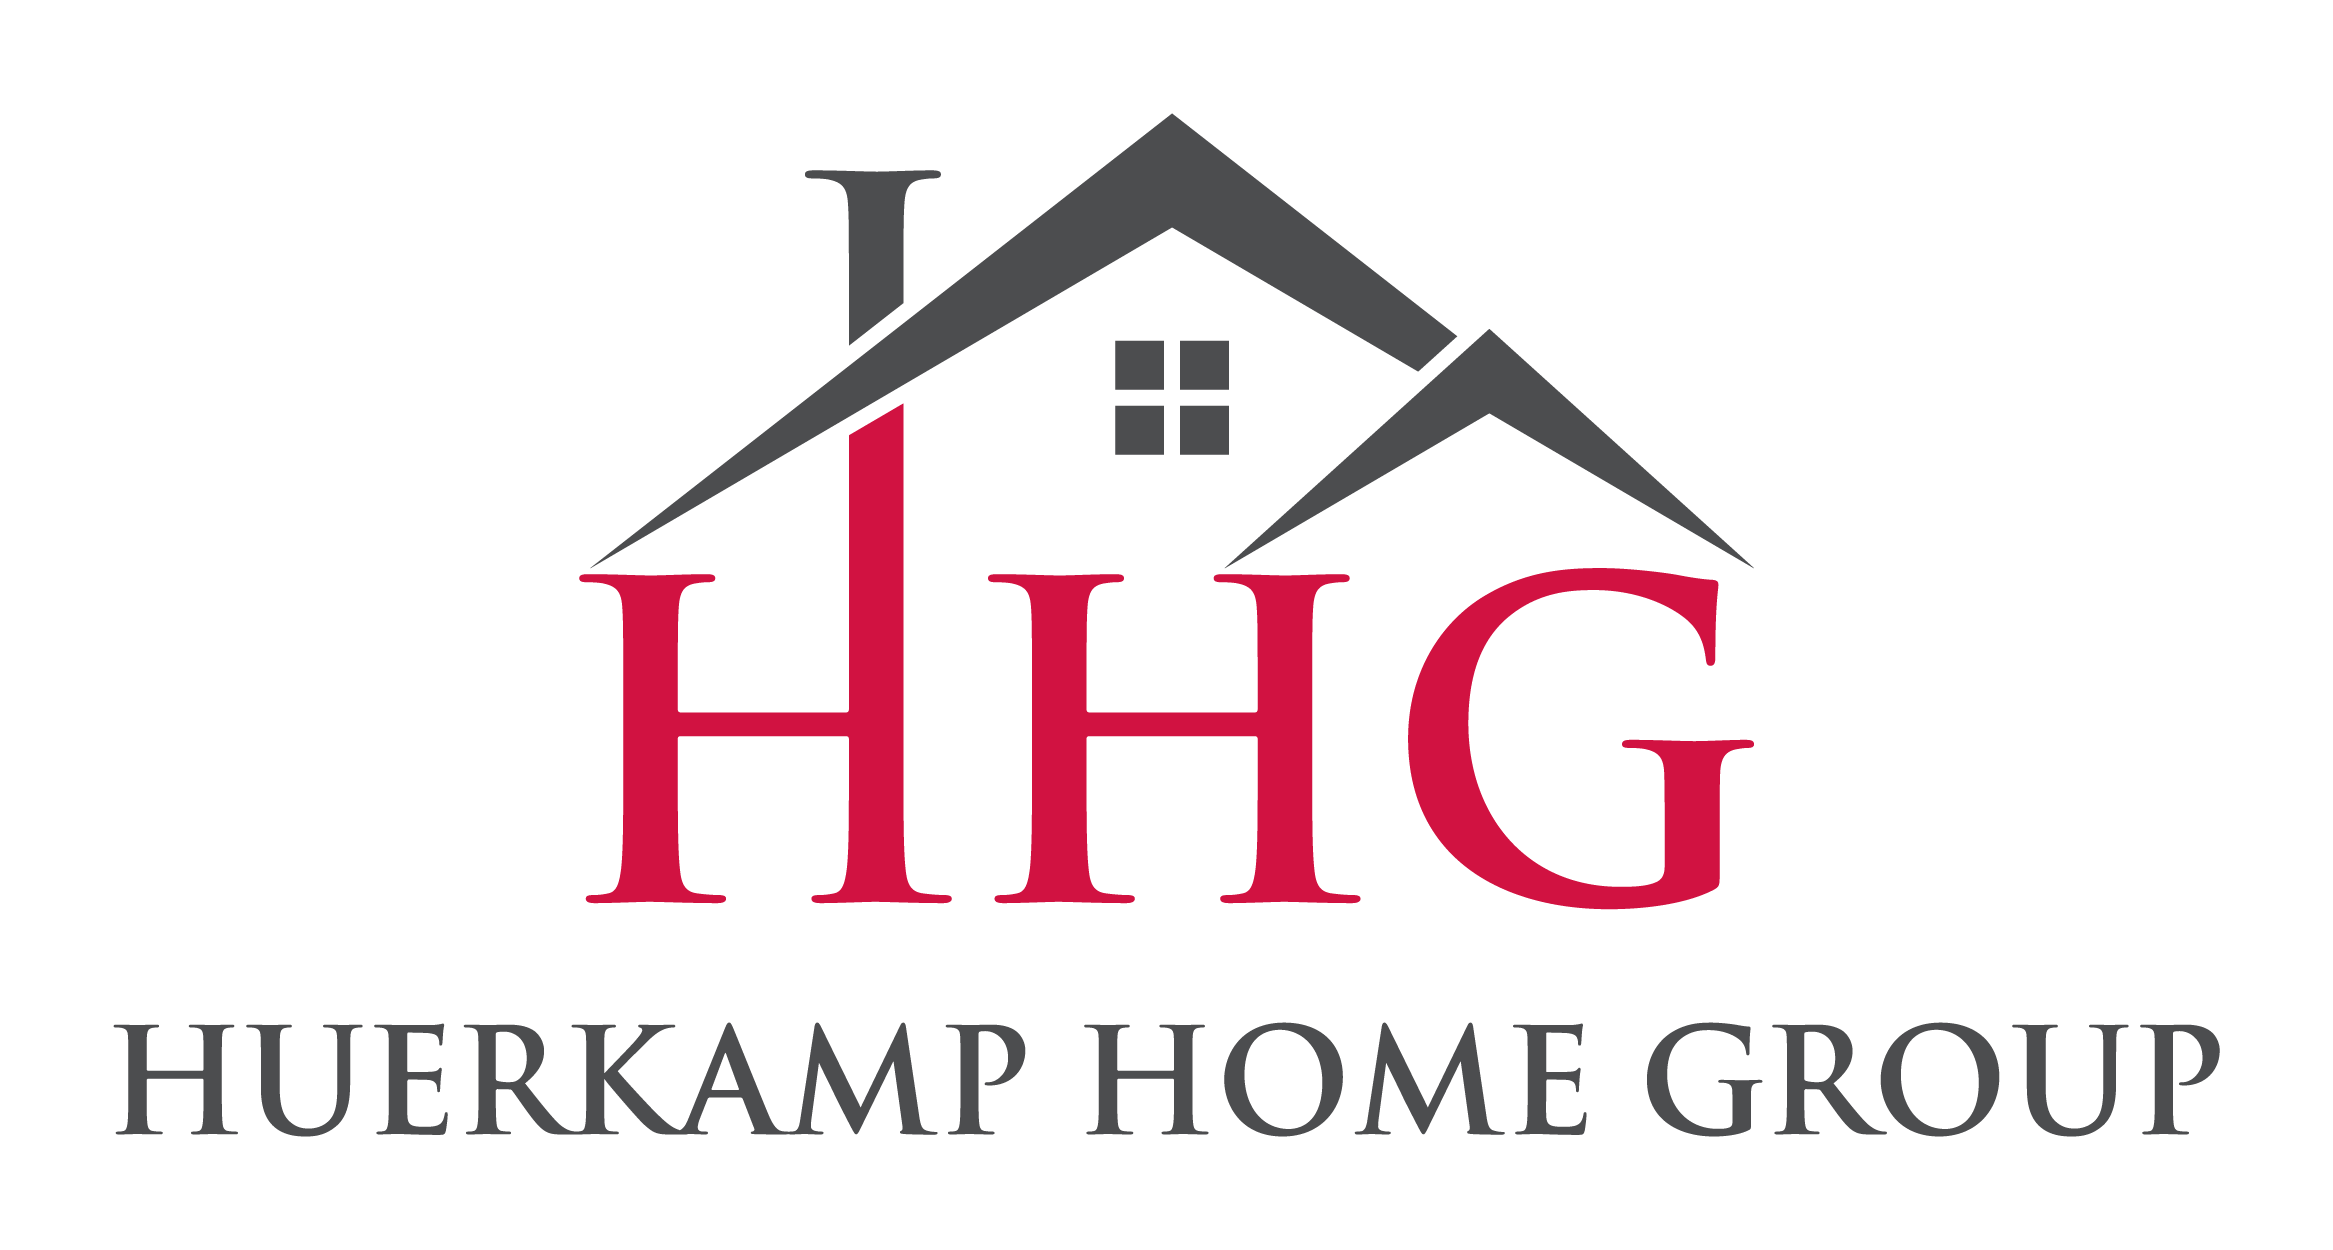 PNG File (Transparent) - HHG Logo - Color.png